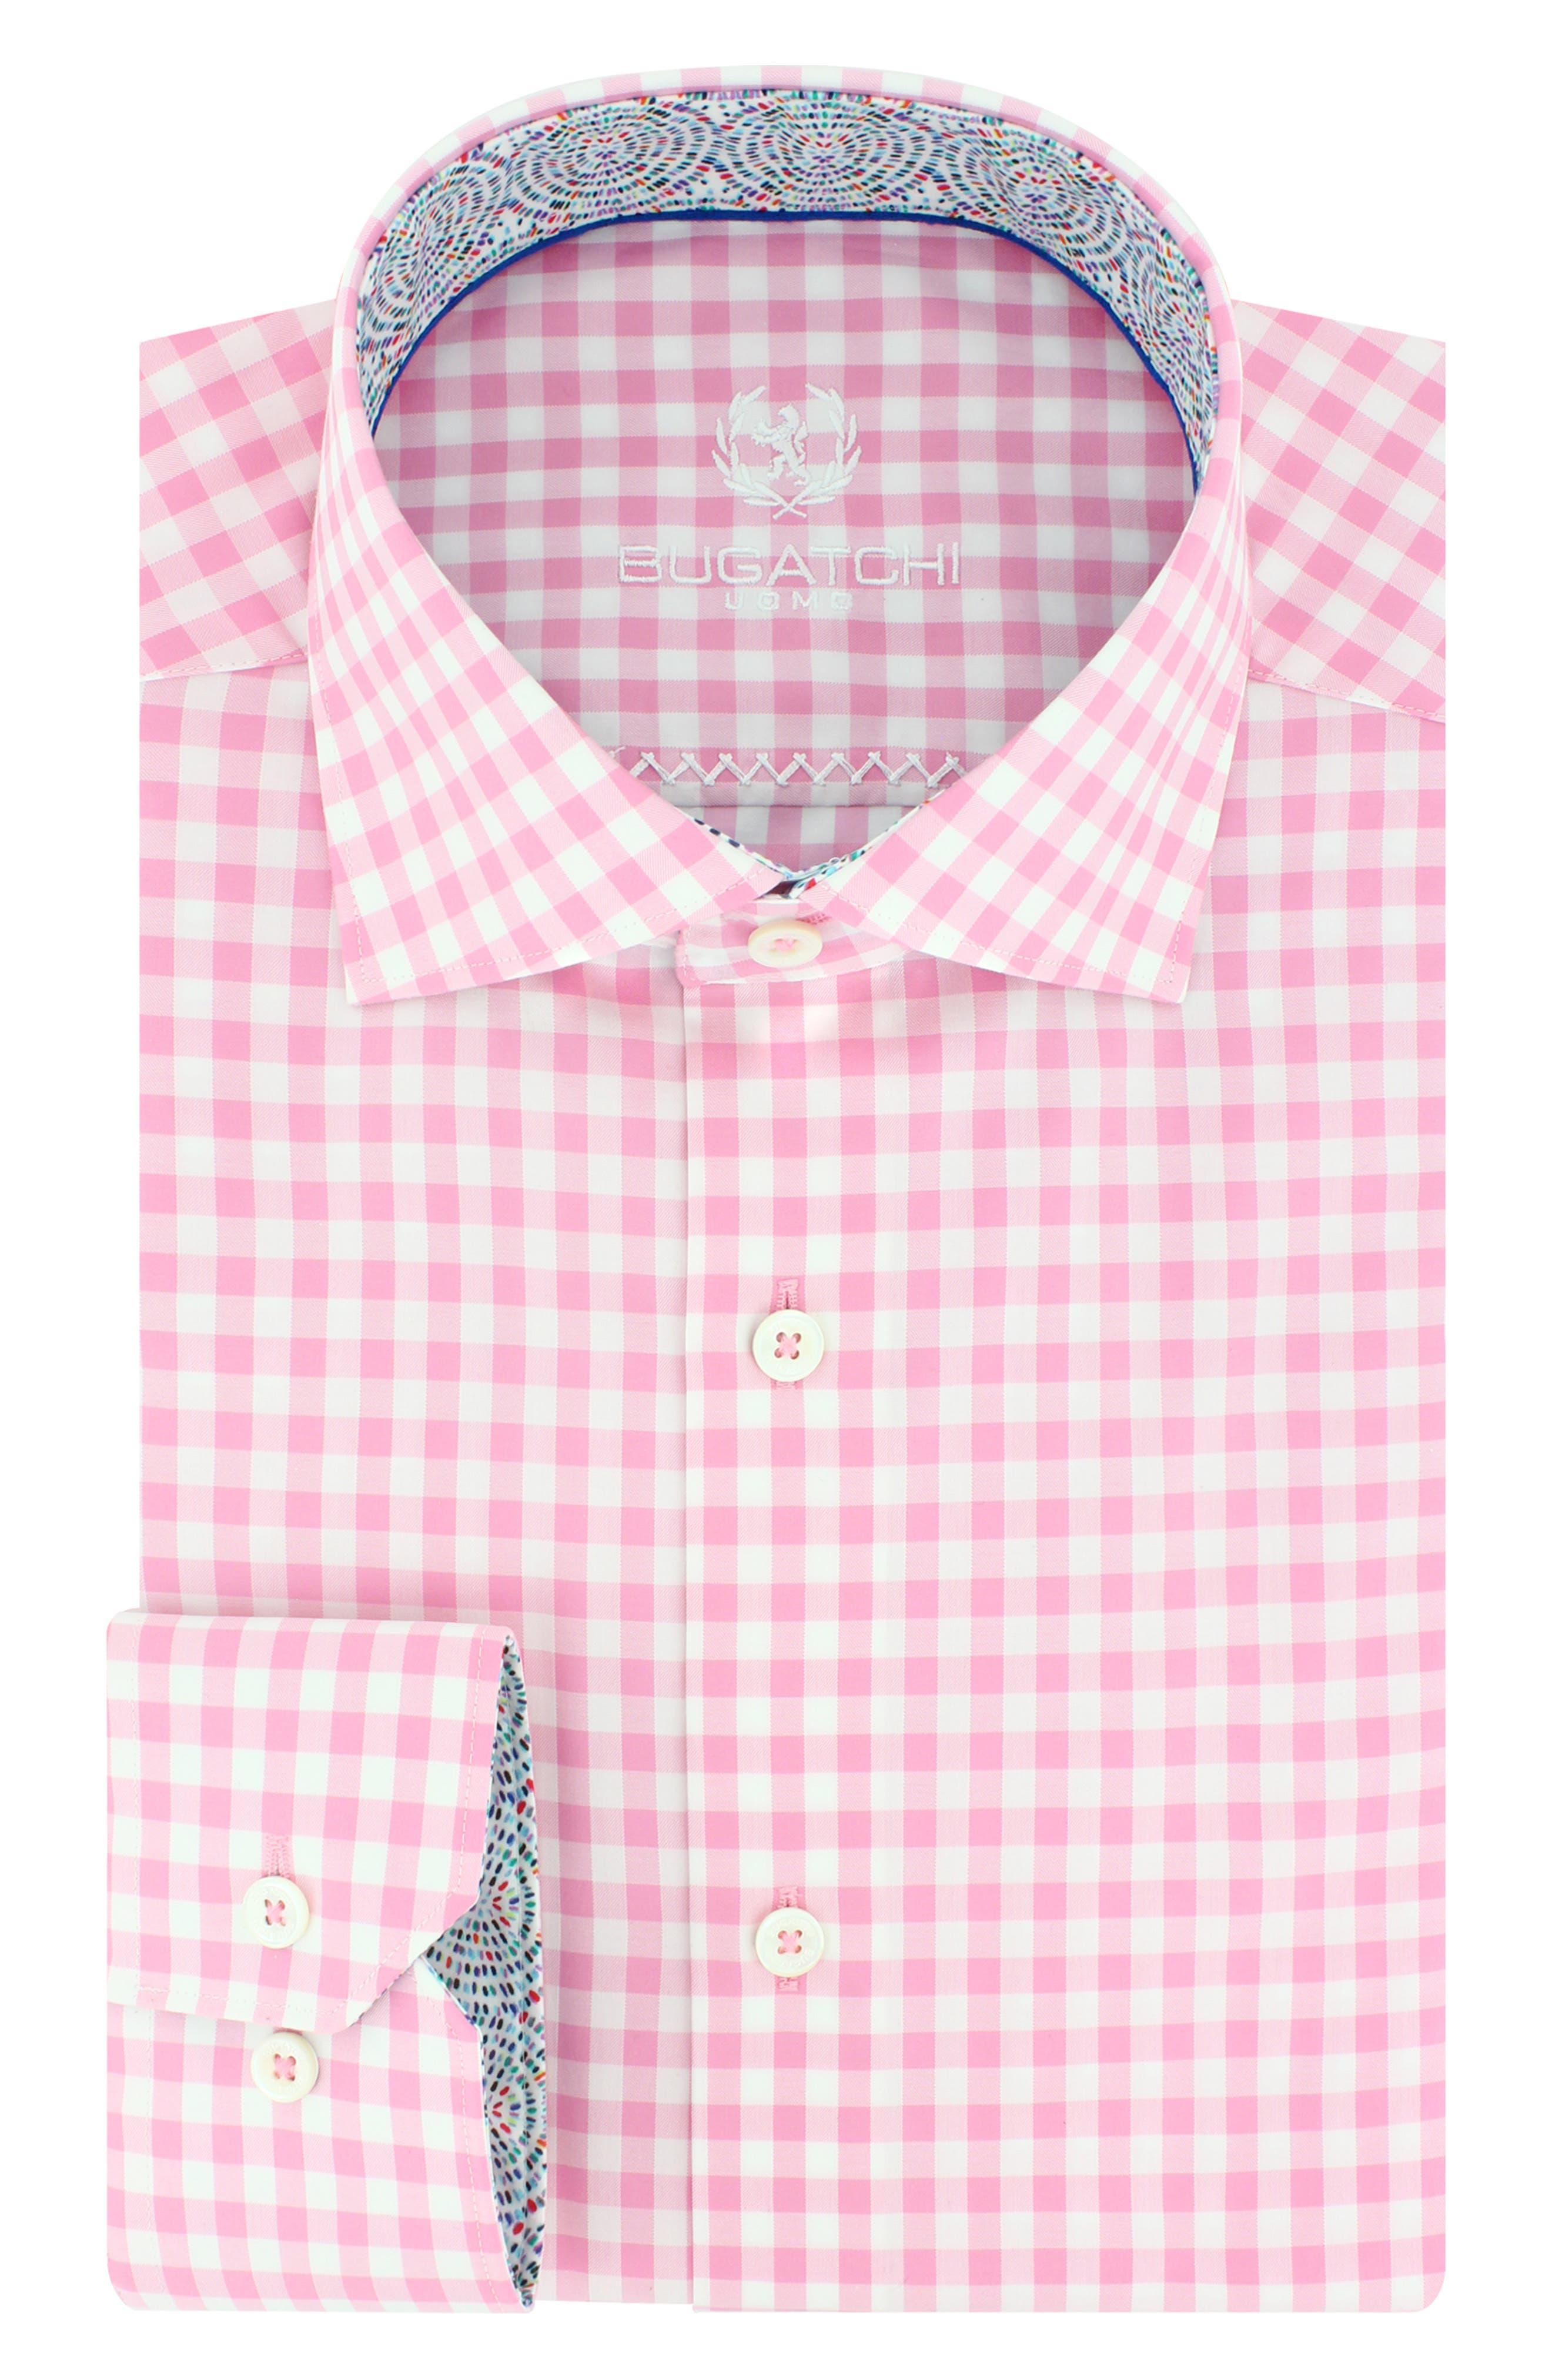 Bugatchi Trim Fit Check Dress Shirt (Regular & Big)